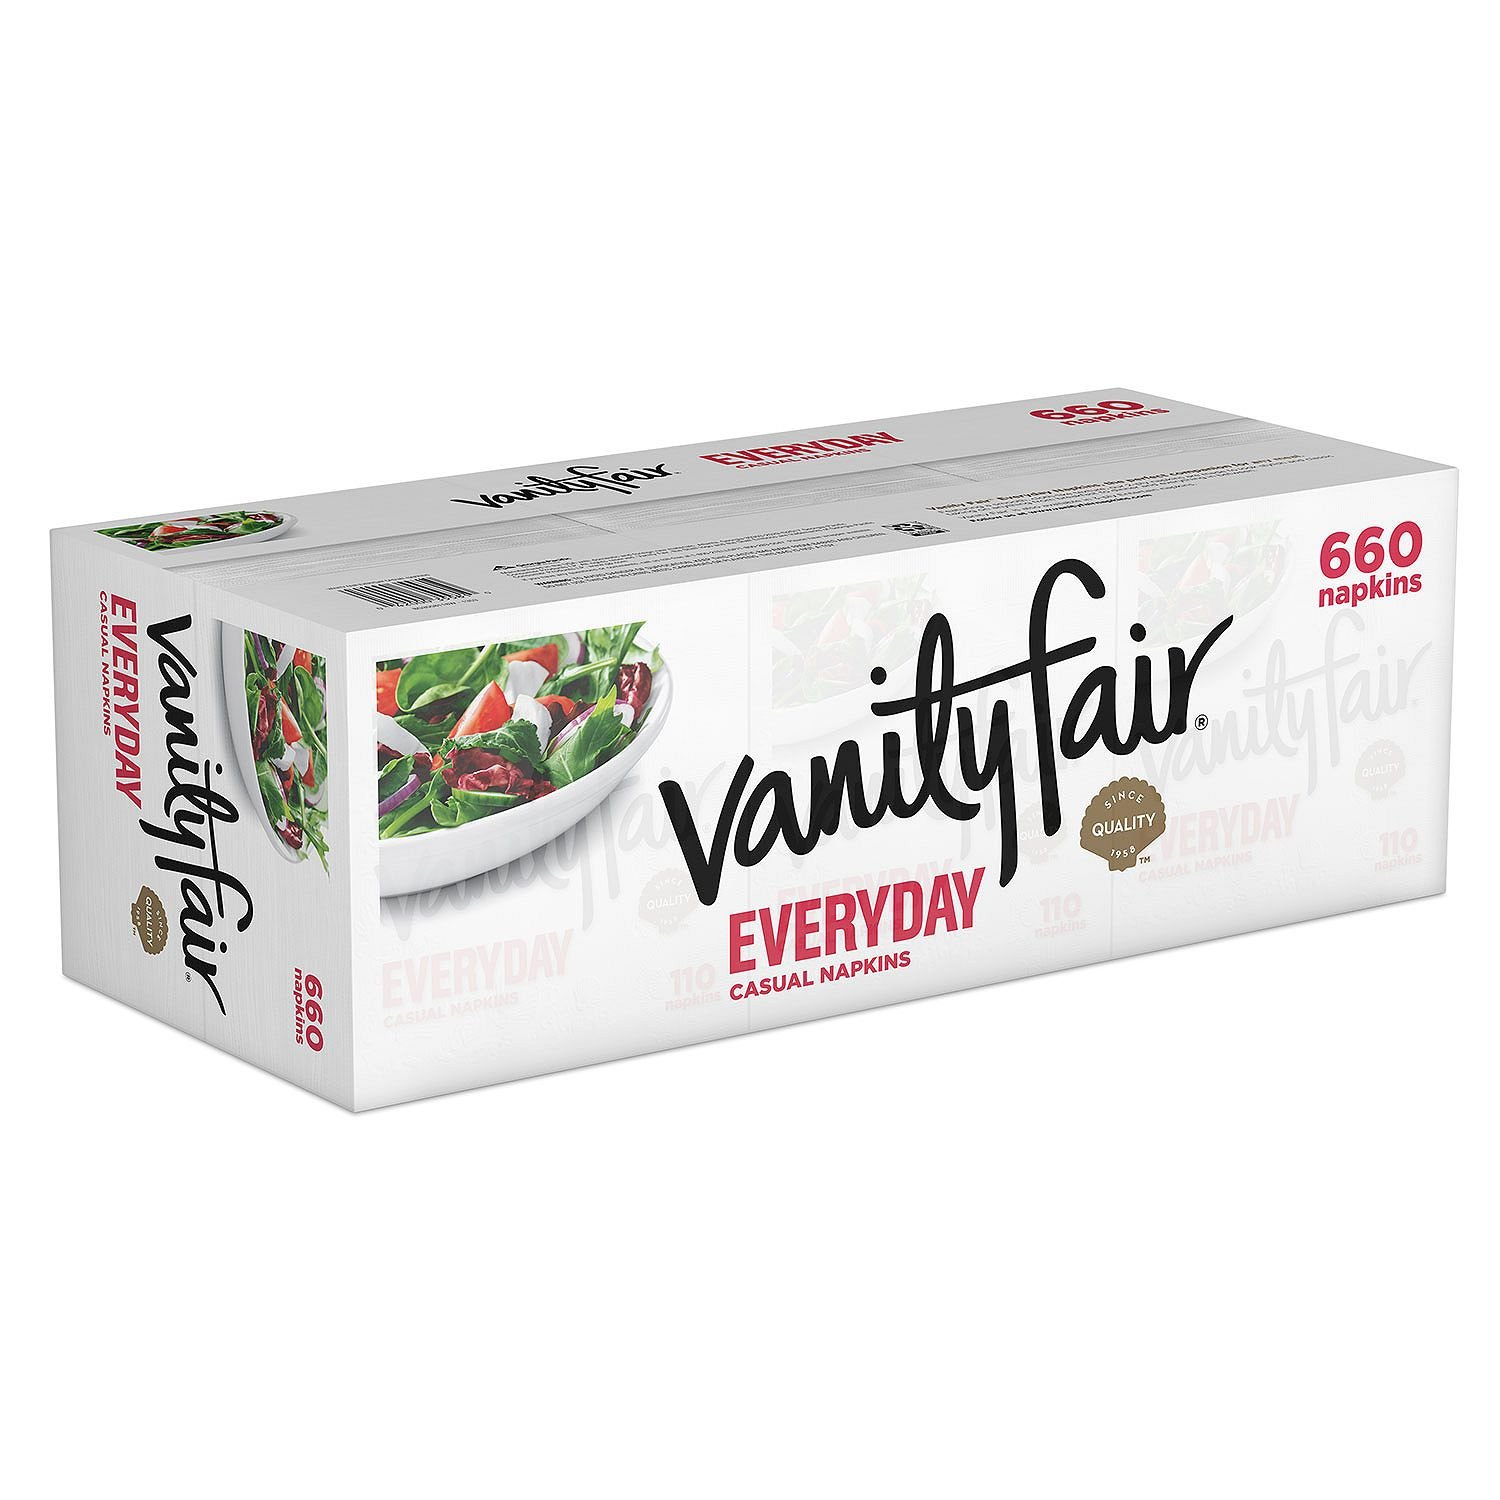 Vanity Fair Everyday Napkins, White Paper Napkins, 660 Count by Vanity Fair (Image #3)